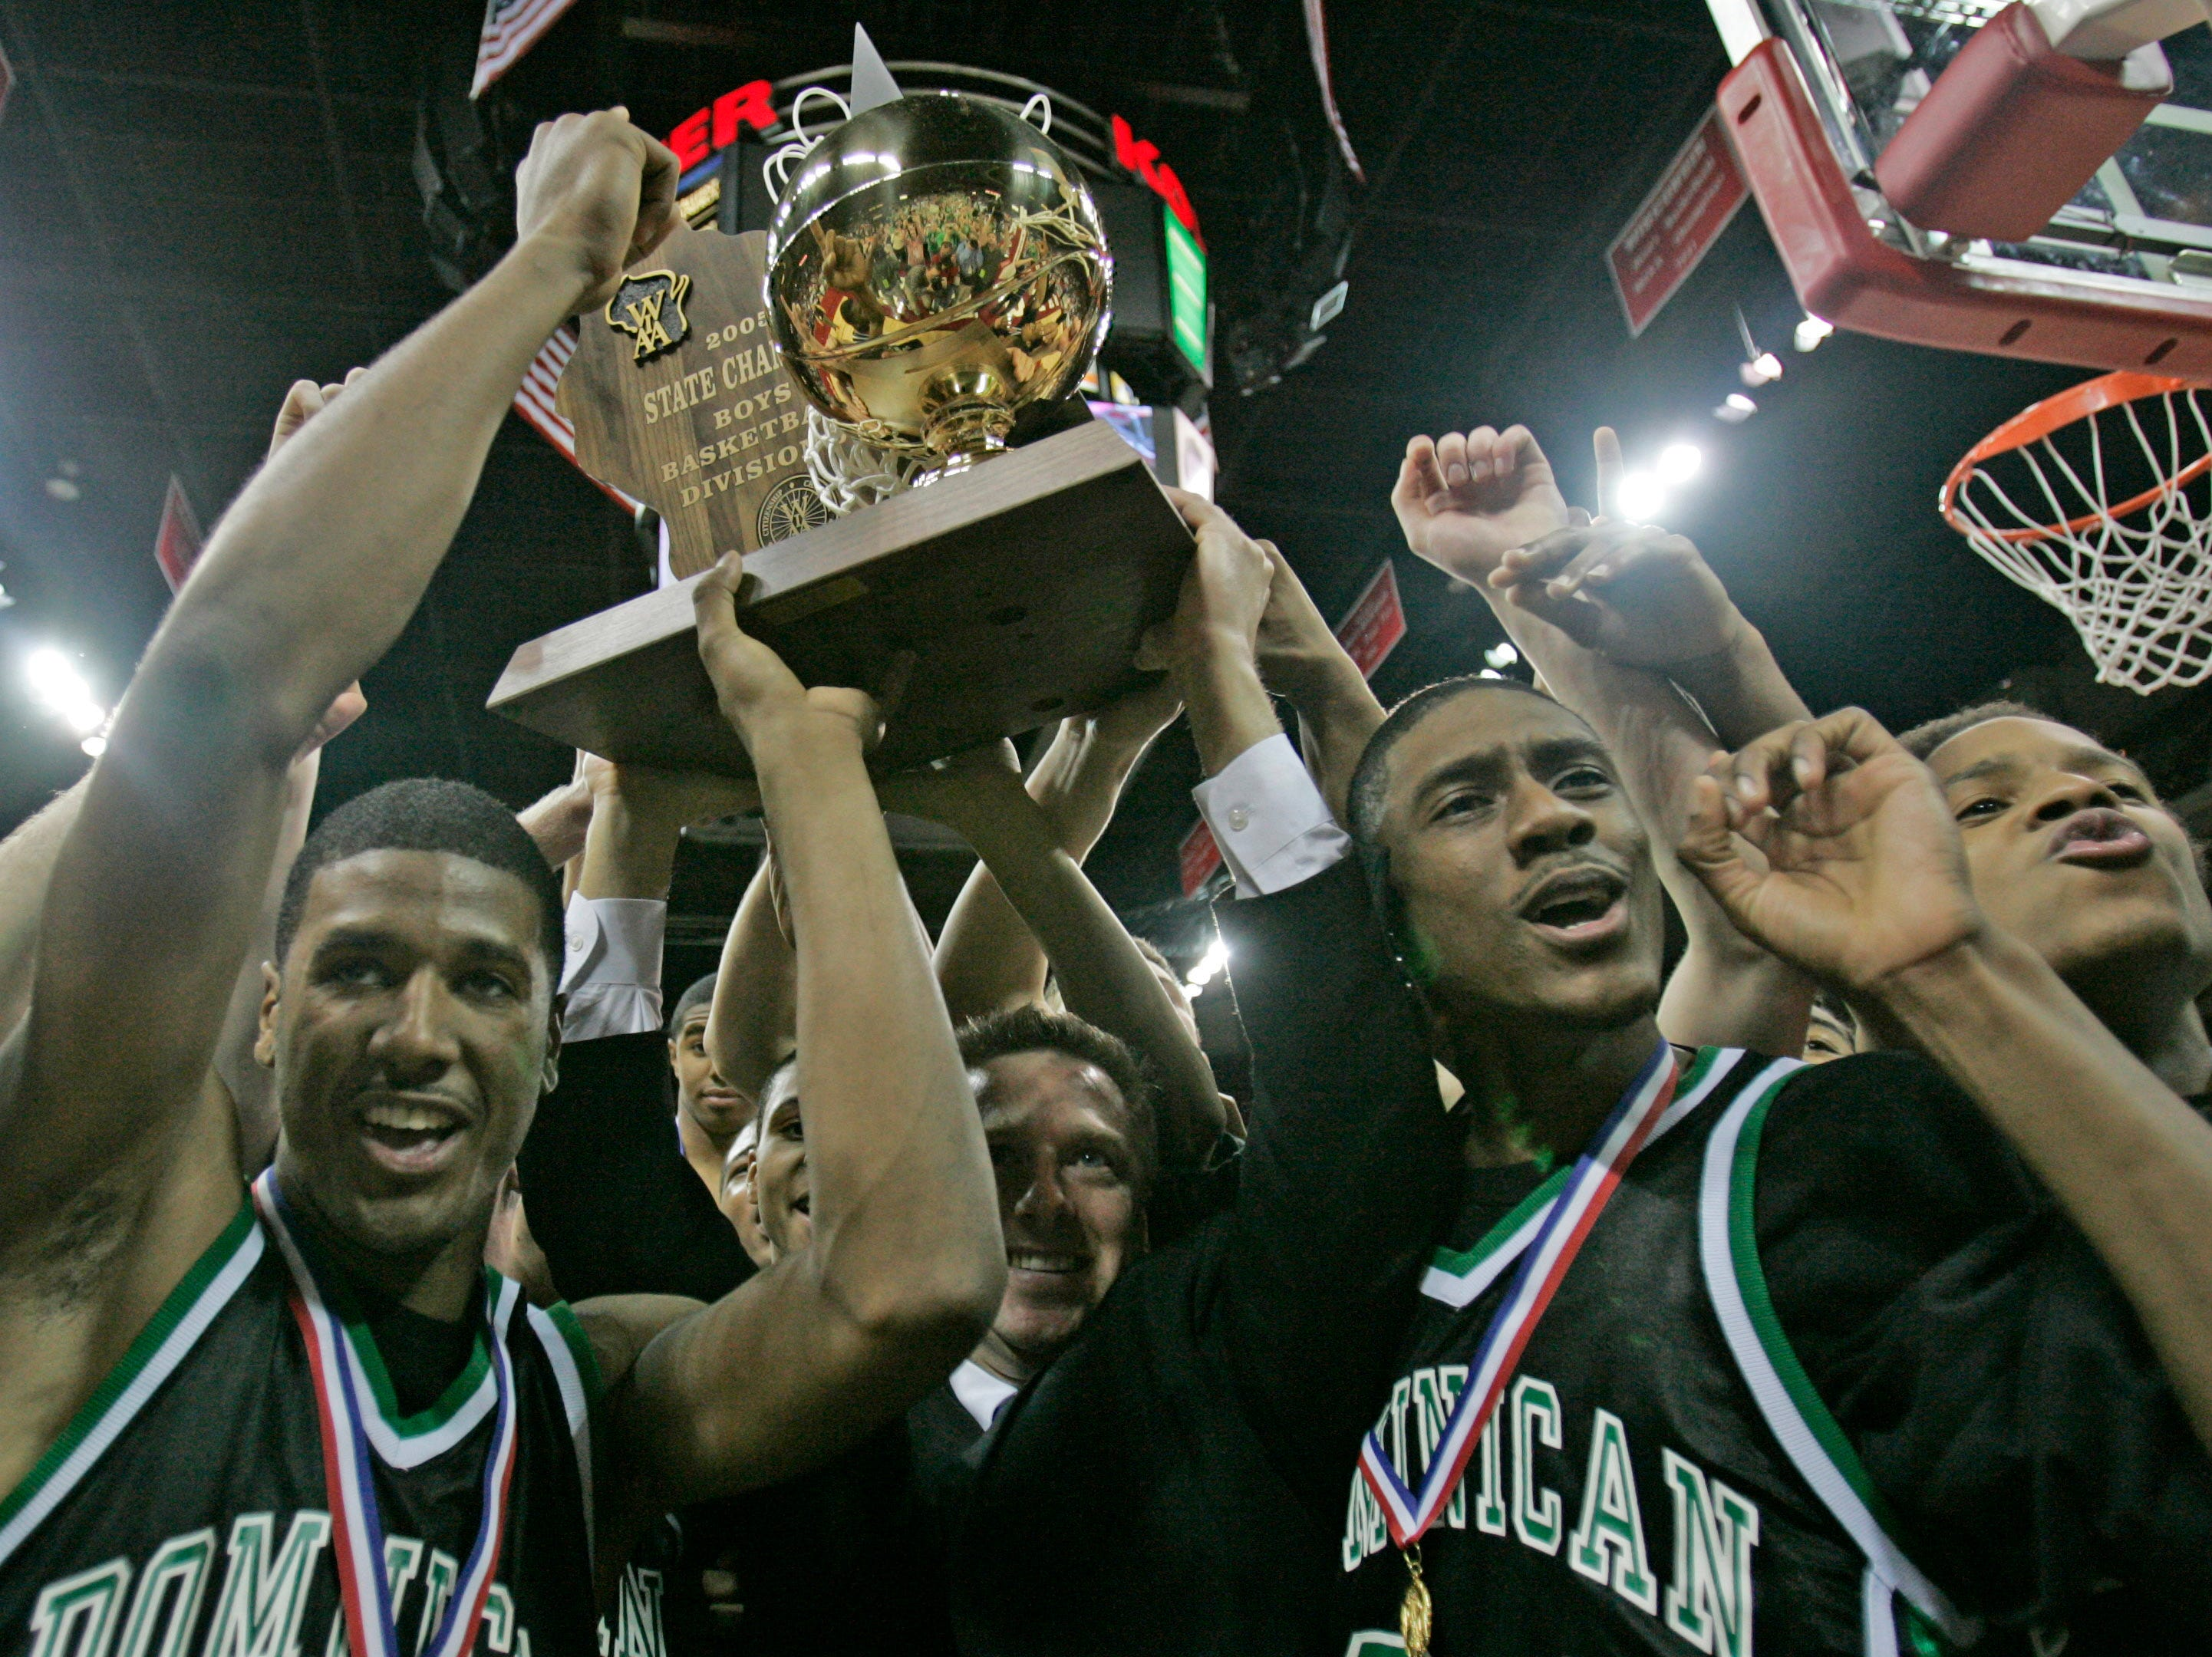 Whitefish Bay Dominican's Ben Hailey (left), coach Paul Wollersheim, Brandon Brown, along with Walter Blount Jr., hold up the 2005 Division 3 trophy after their 66-57 win over Grantsburg.